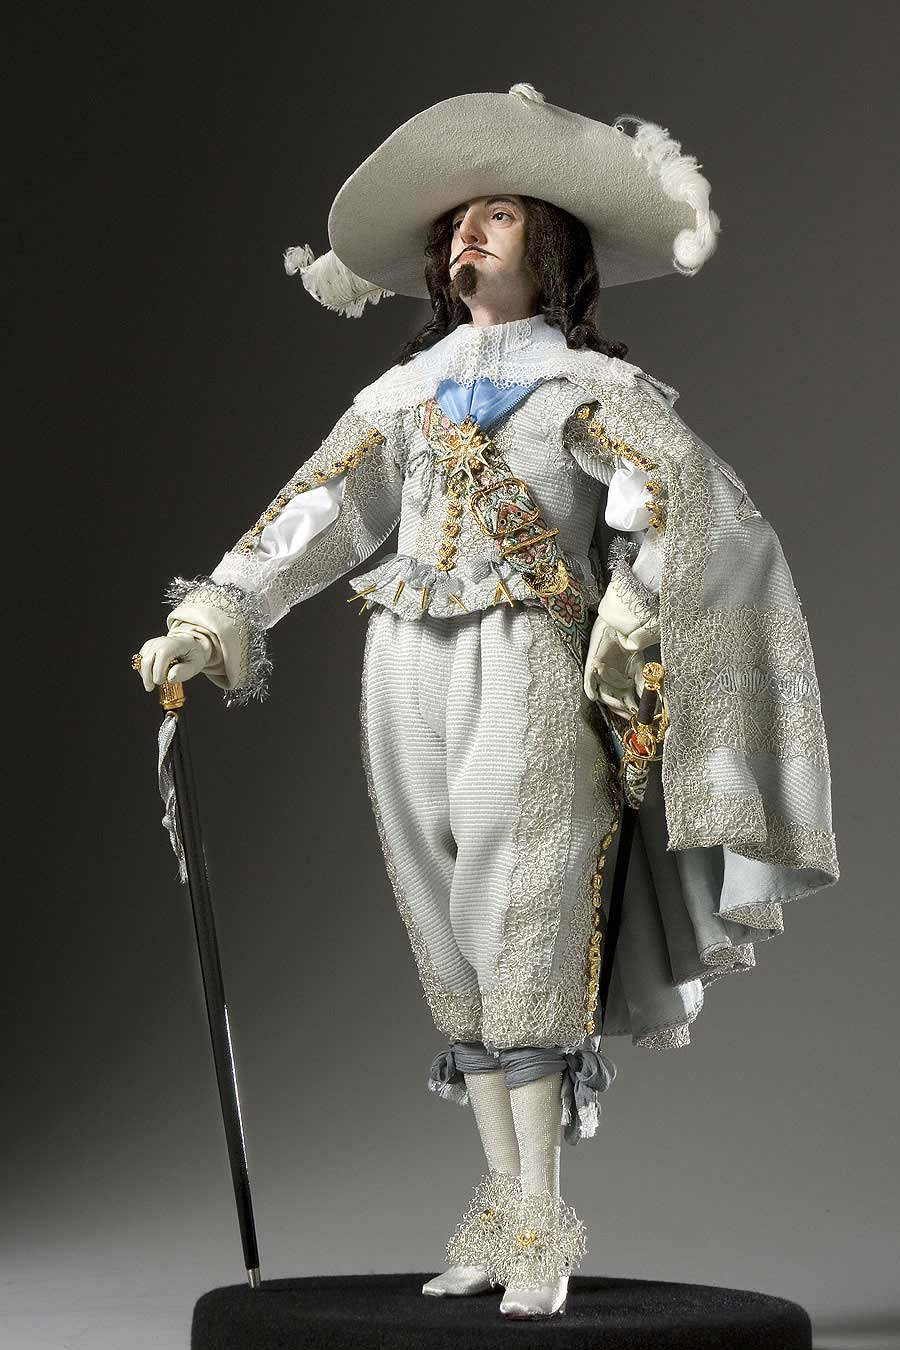 Full length color image of Louis XIII aka. Louis XIII of France,